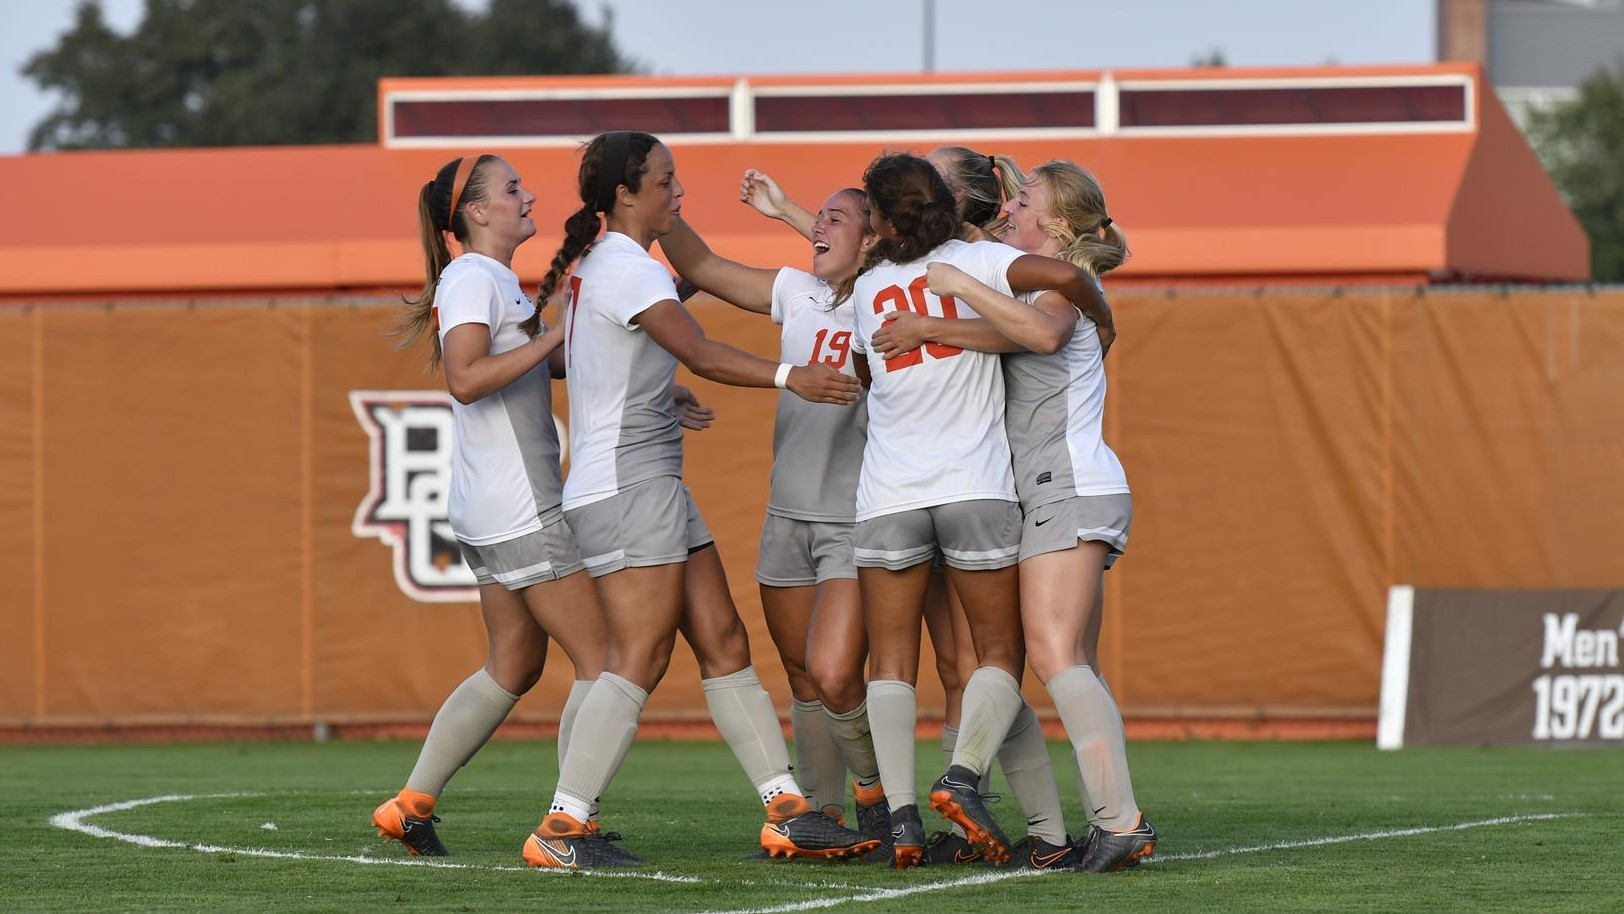 BGSU Welcomes NIU, WMU to Town for Second Weekend of MAC